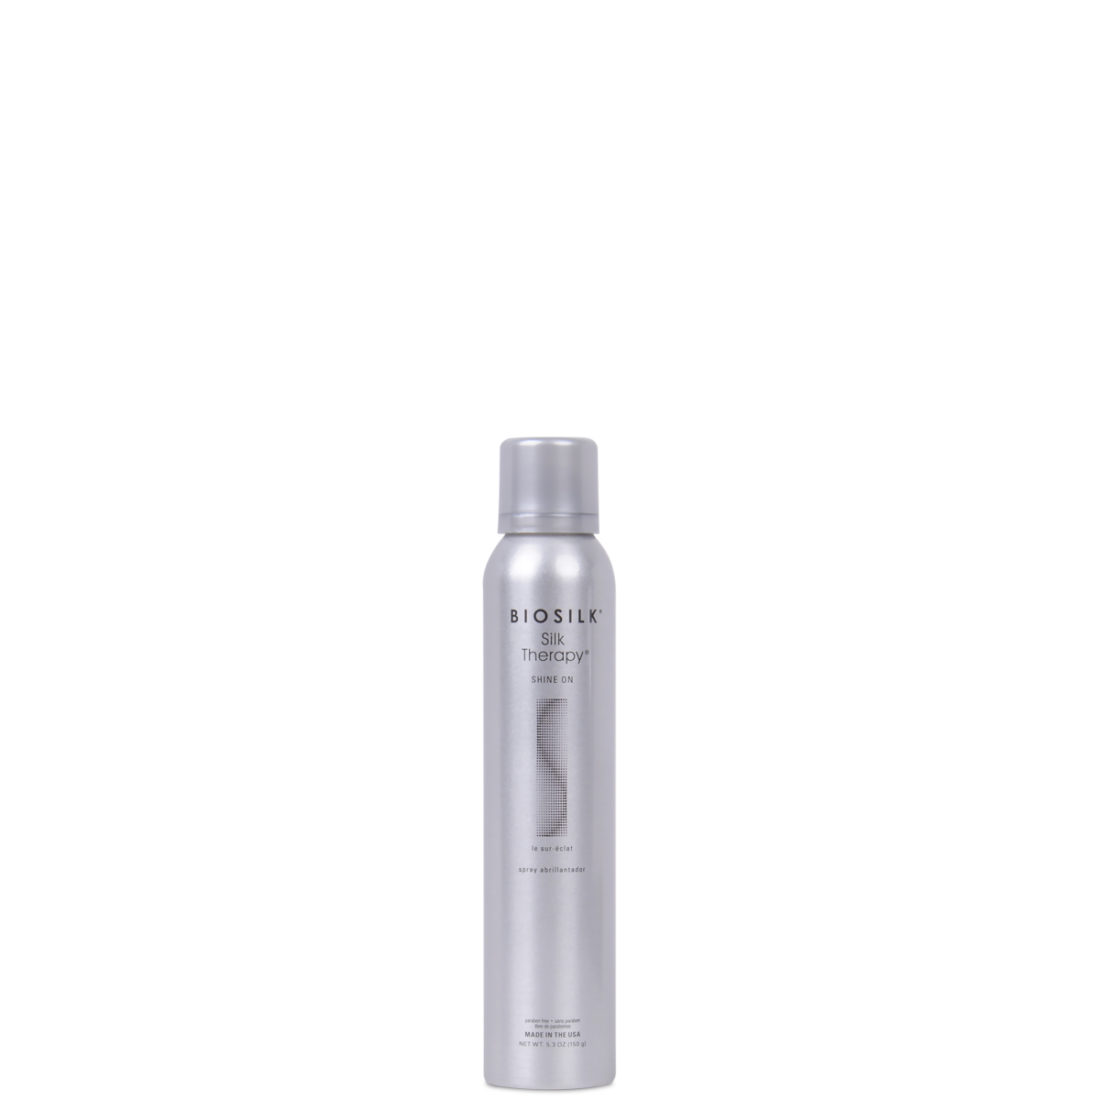 Biosilk Silk Therapy Biosilk Silk Therapy Spray Spritz Silk Therapy Styling